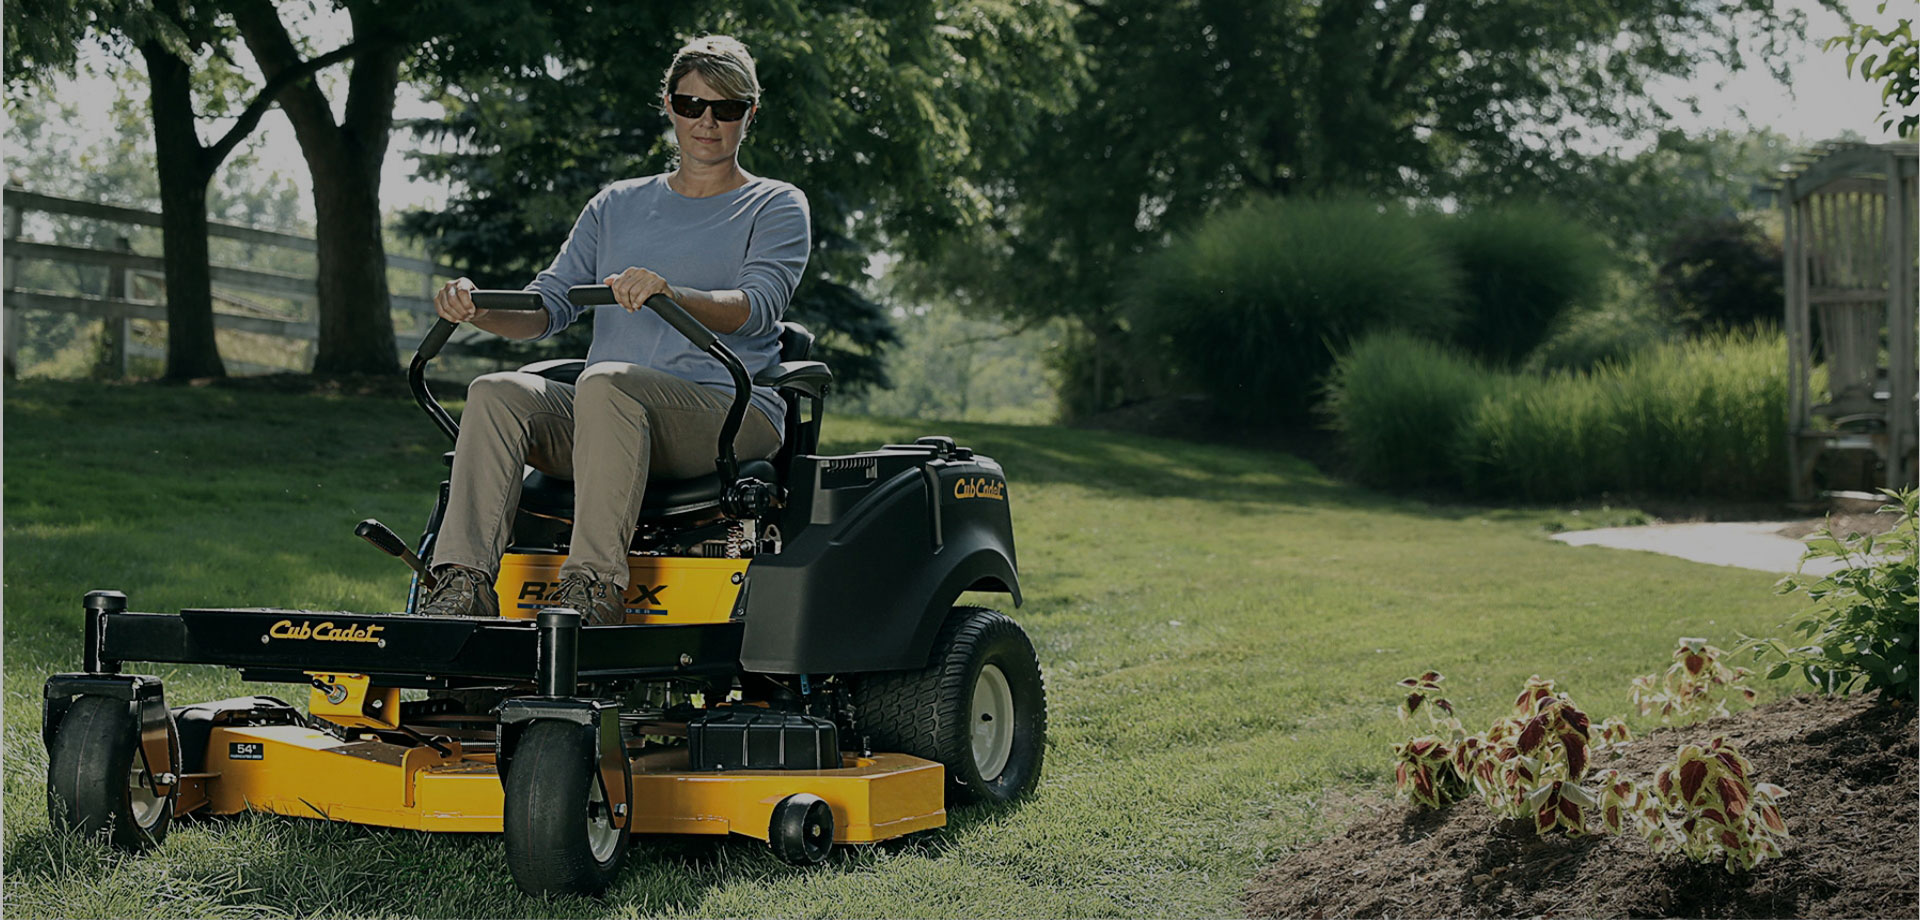 Tuskaloosa Lawn Equipment